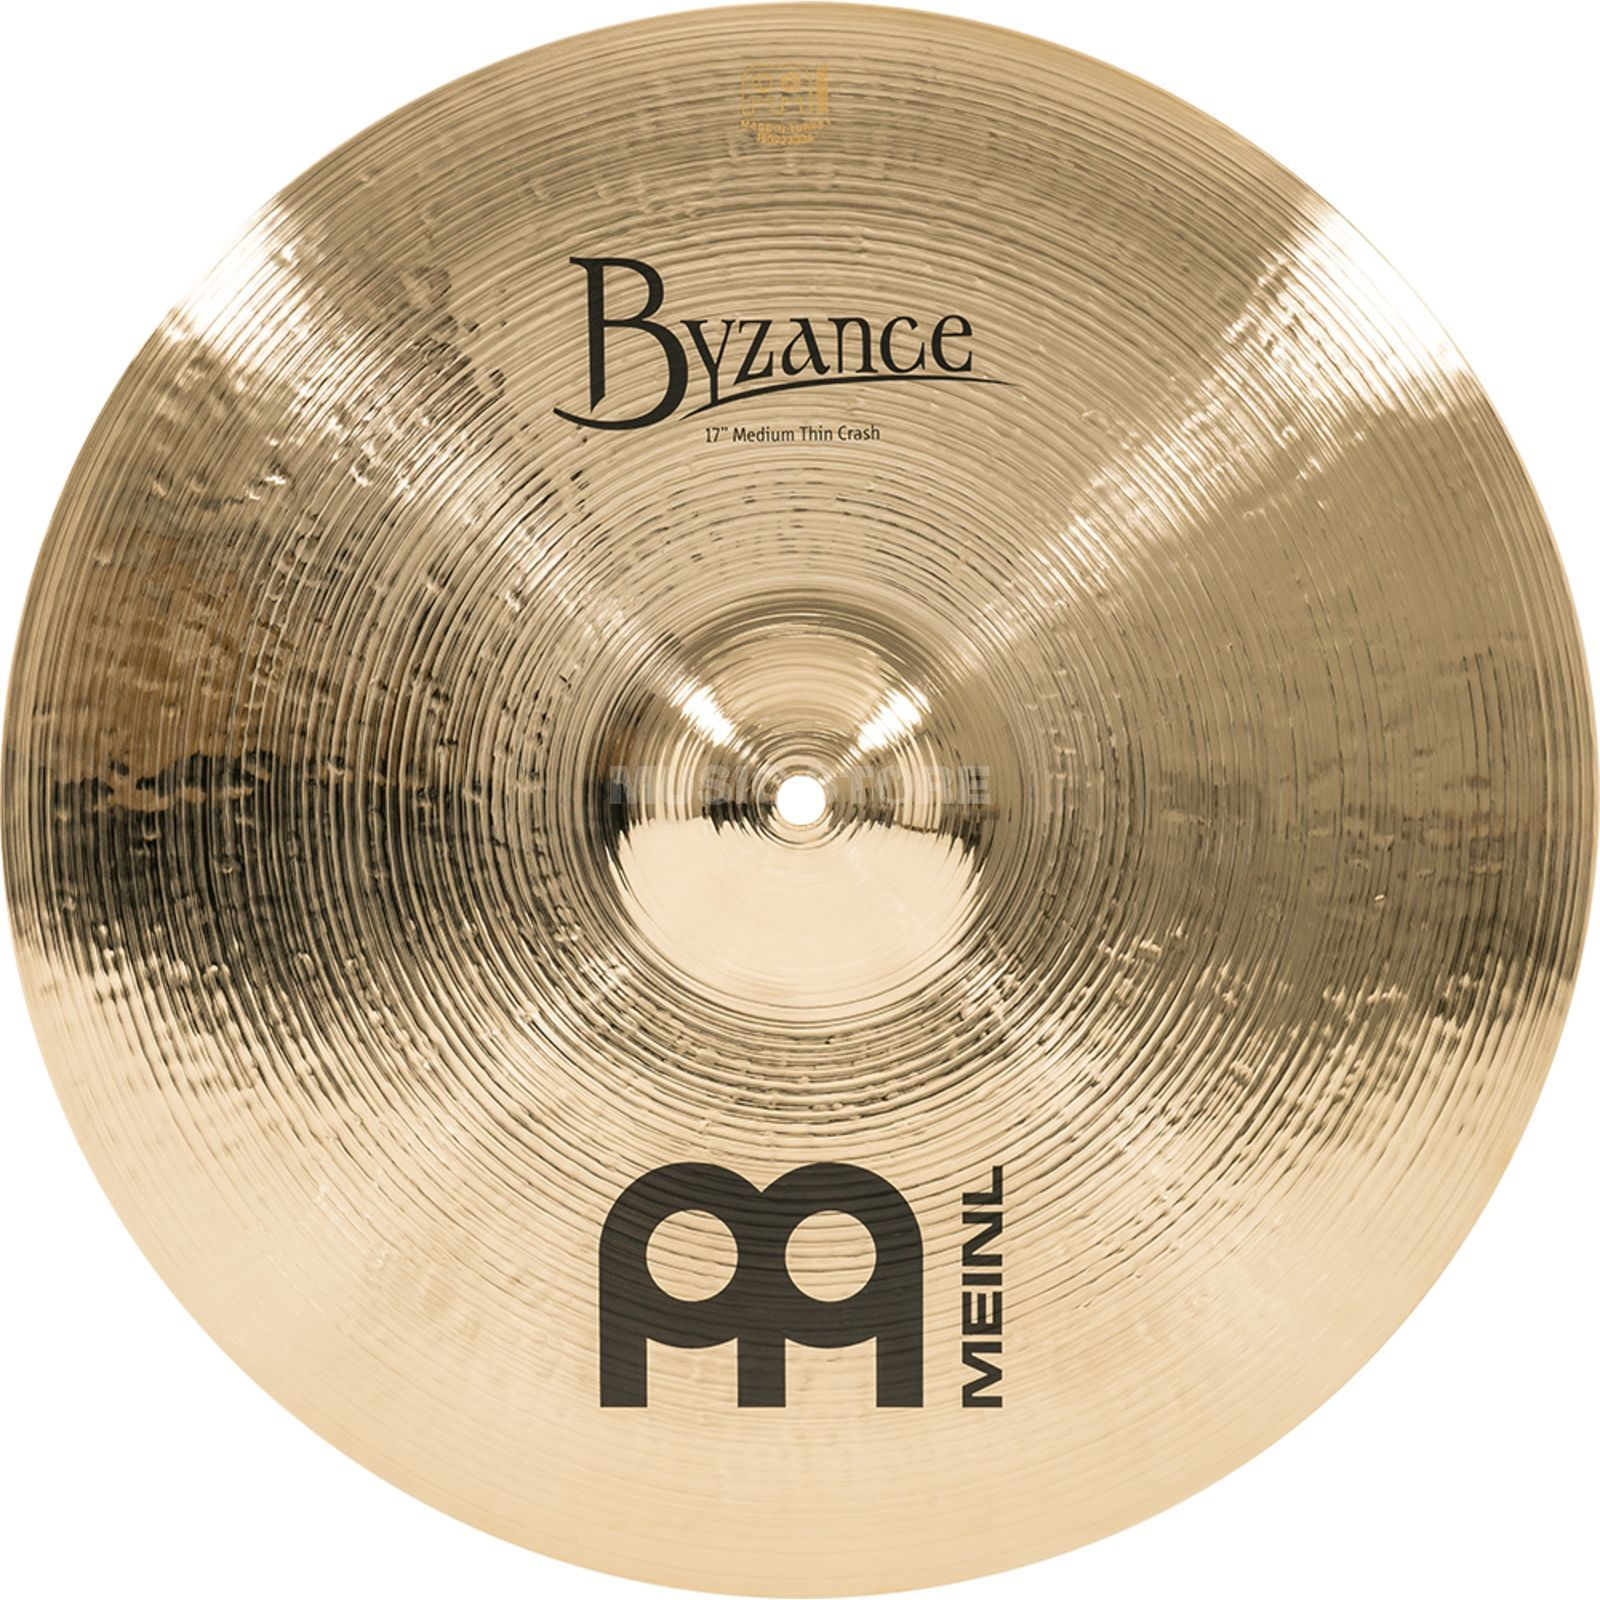 "Meinl Byzance Medium Thin Crash 17"" B17MTC-B, Brilliant Finish Immagine prodotto"